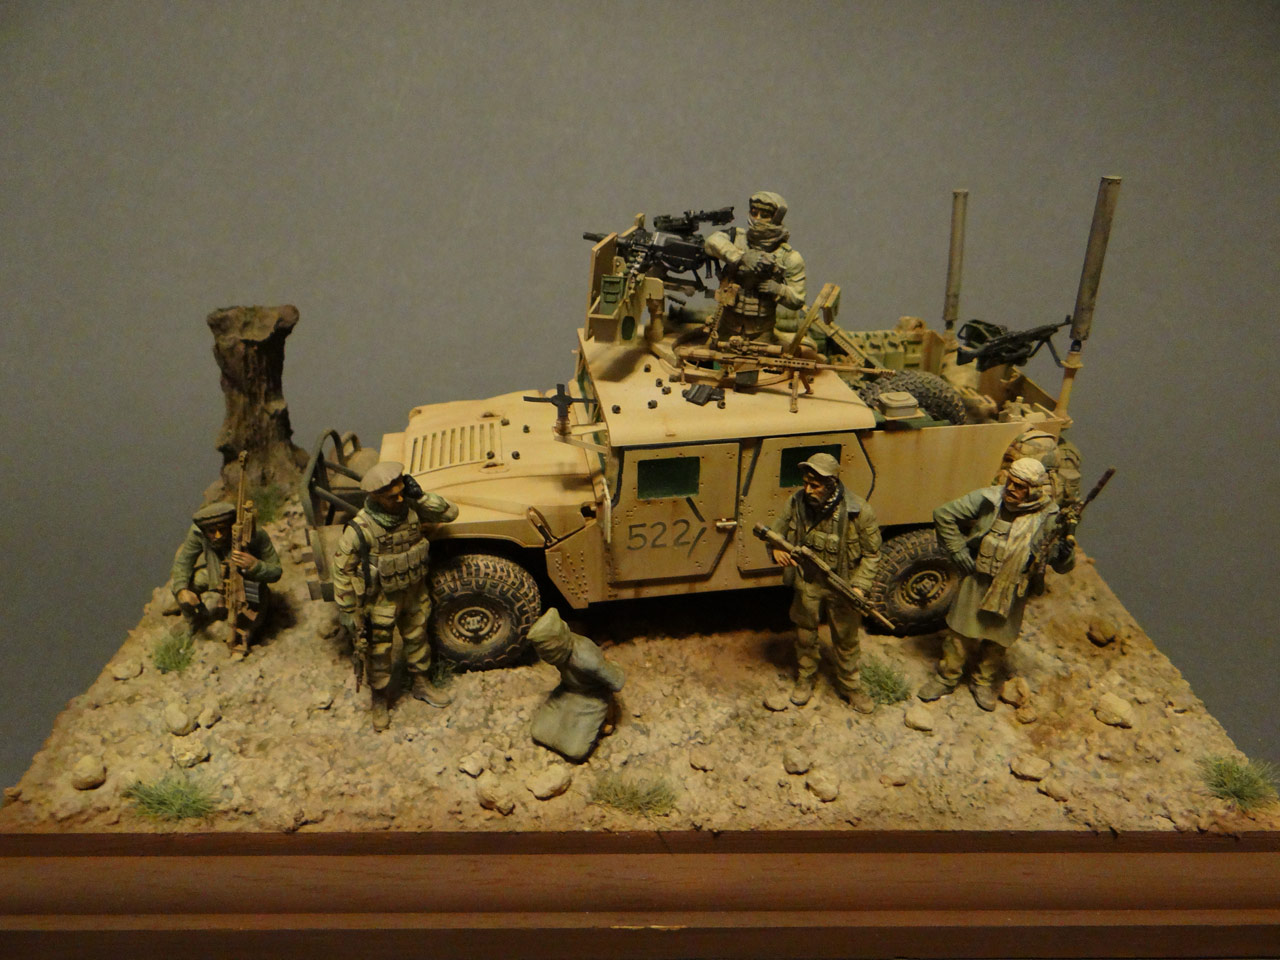 Dioramas and Vignettes: Behind the enemy's lines, photo #2